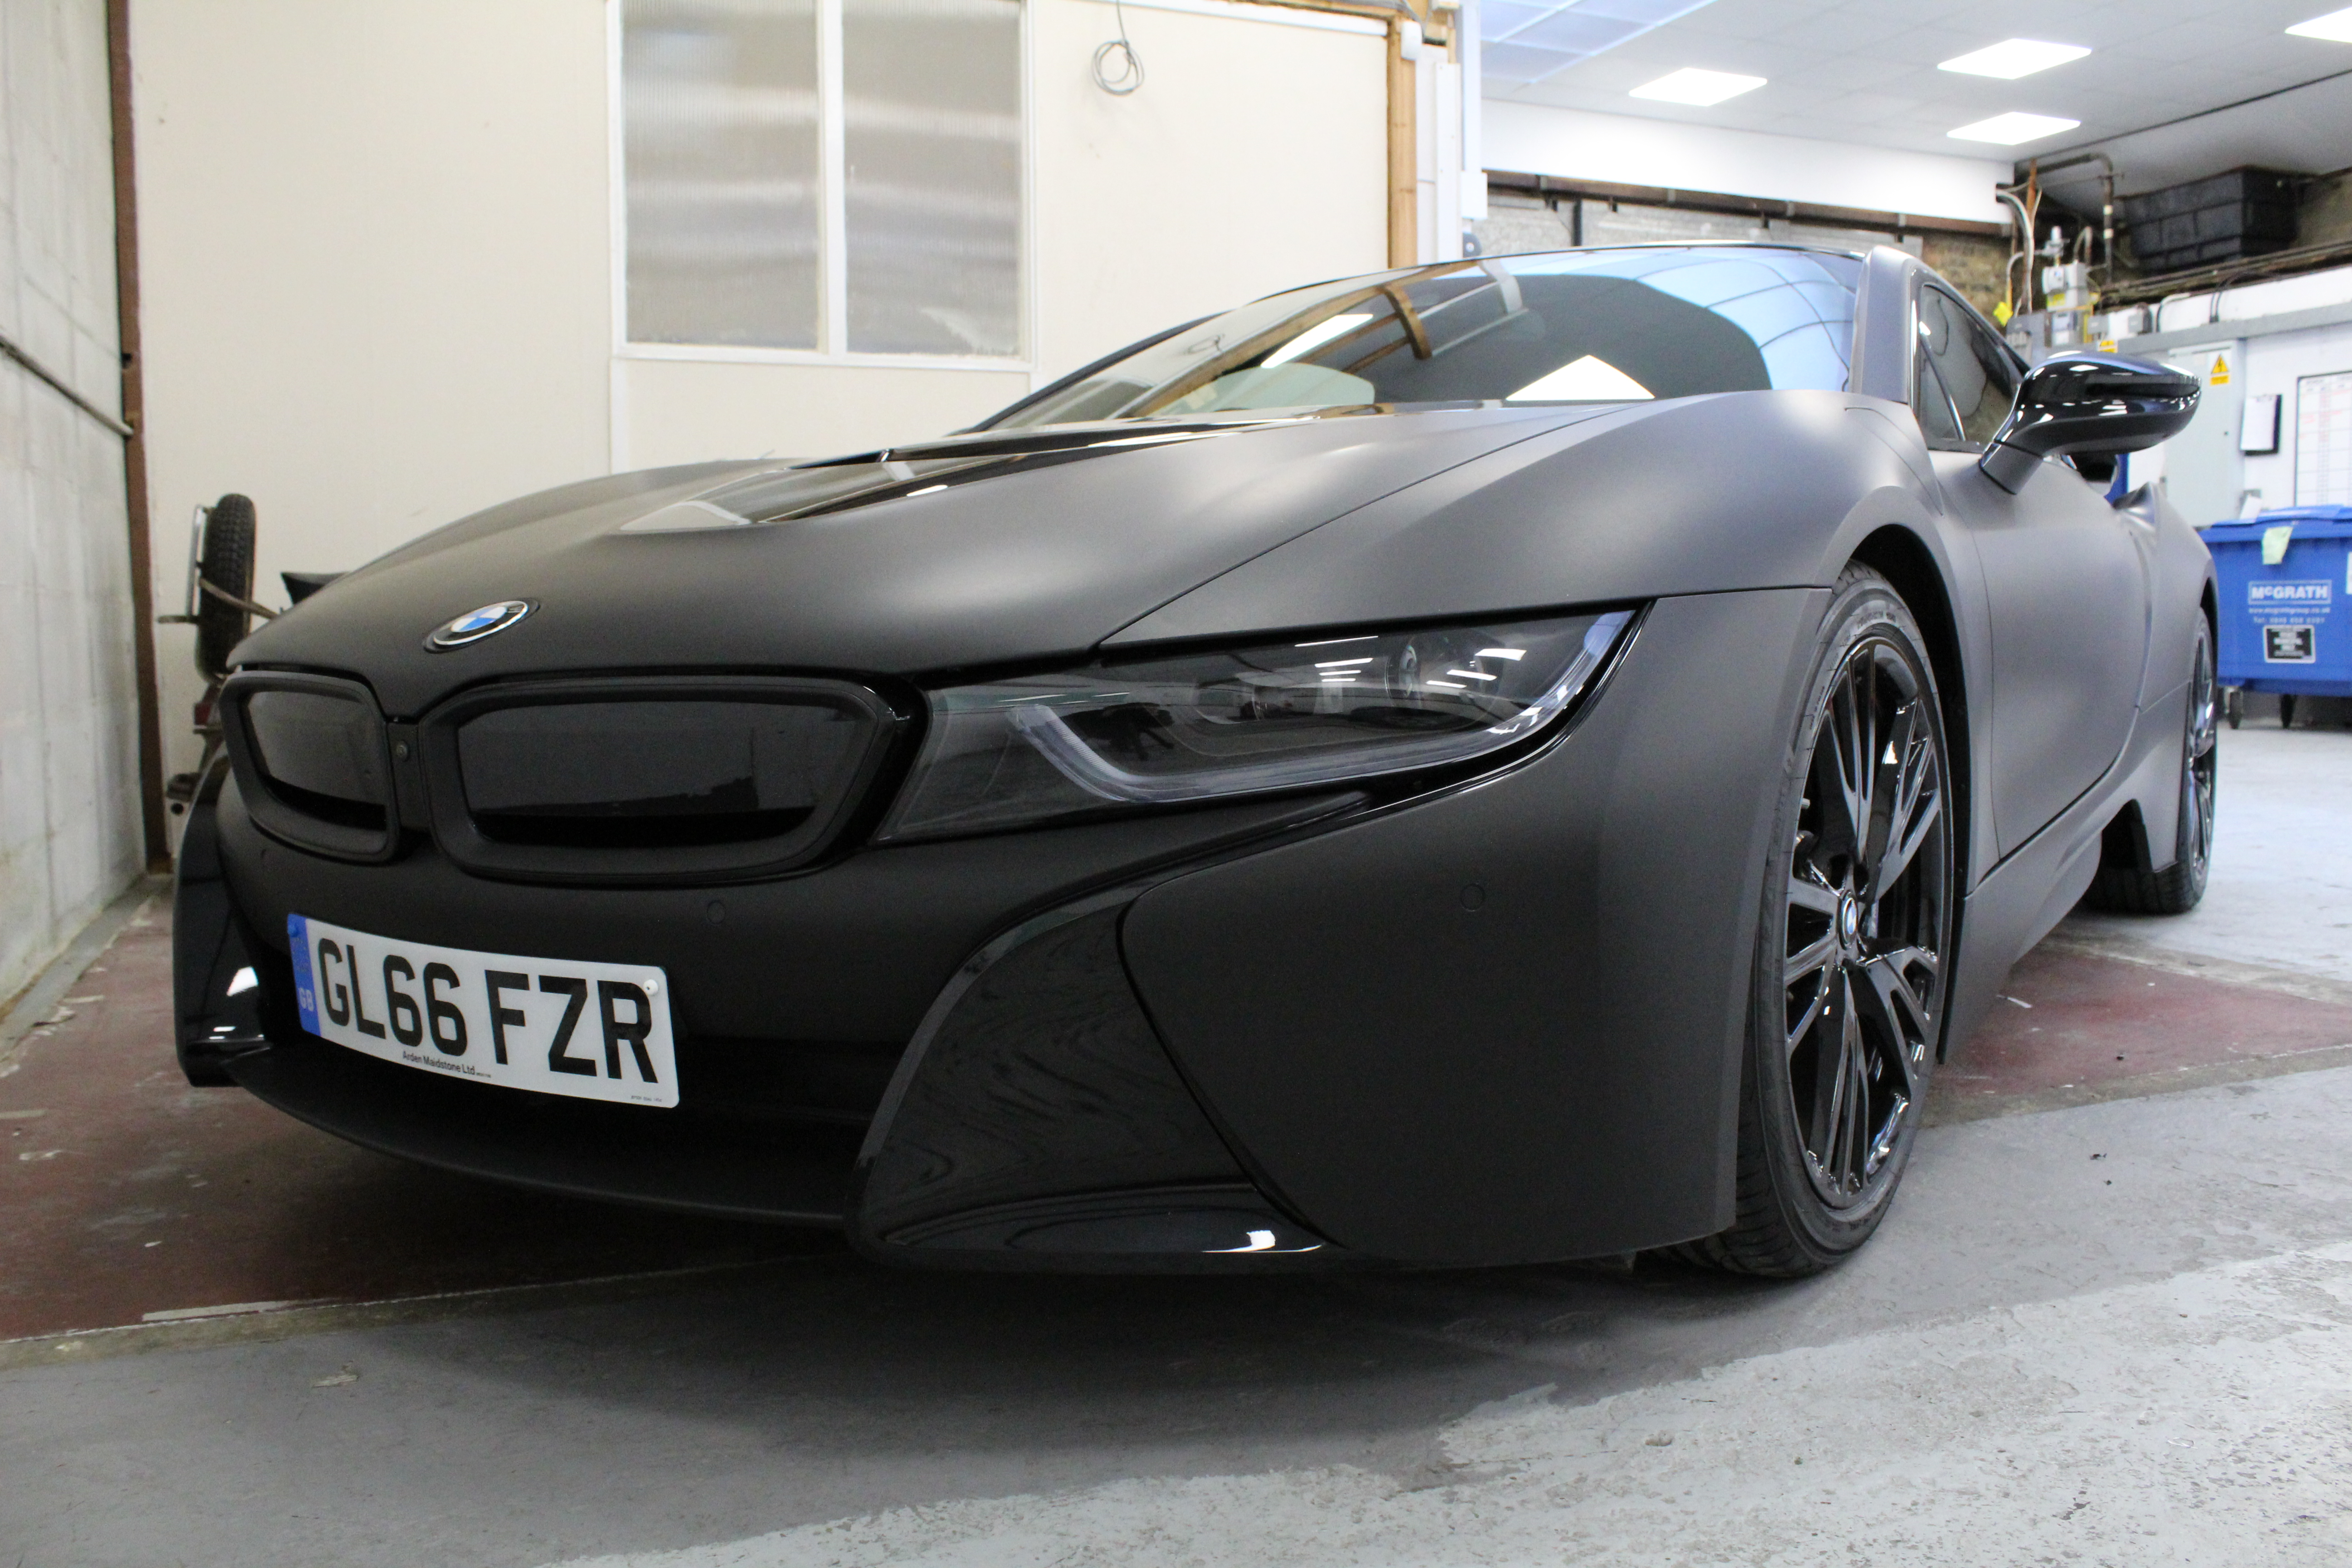 Matte Black Bmw >> Bmw I8 Black Matte Wrap London